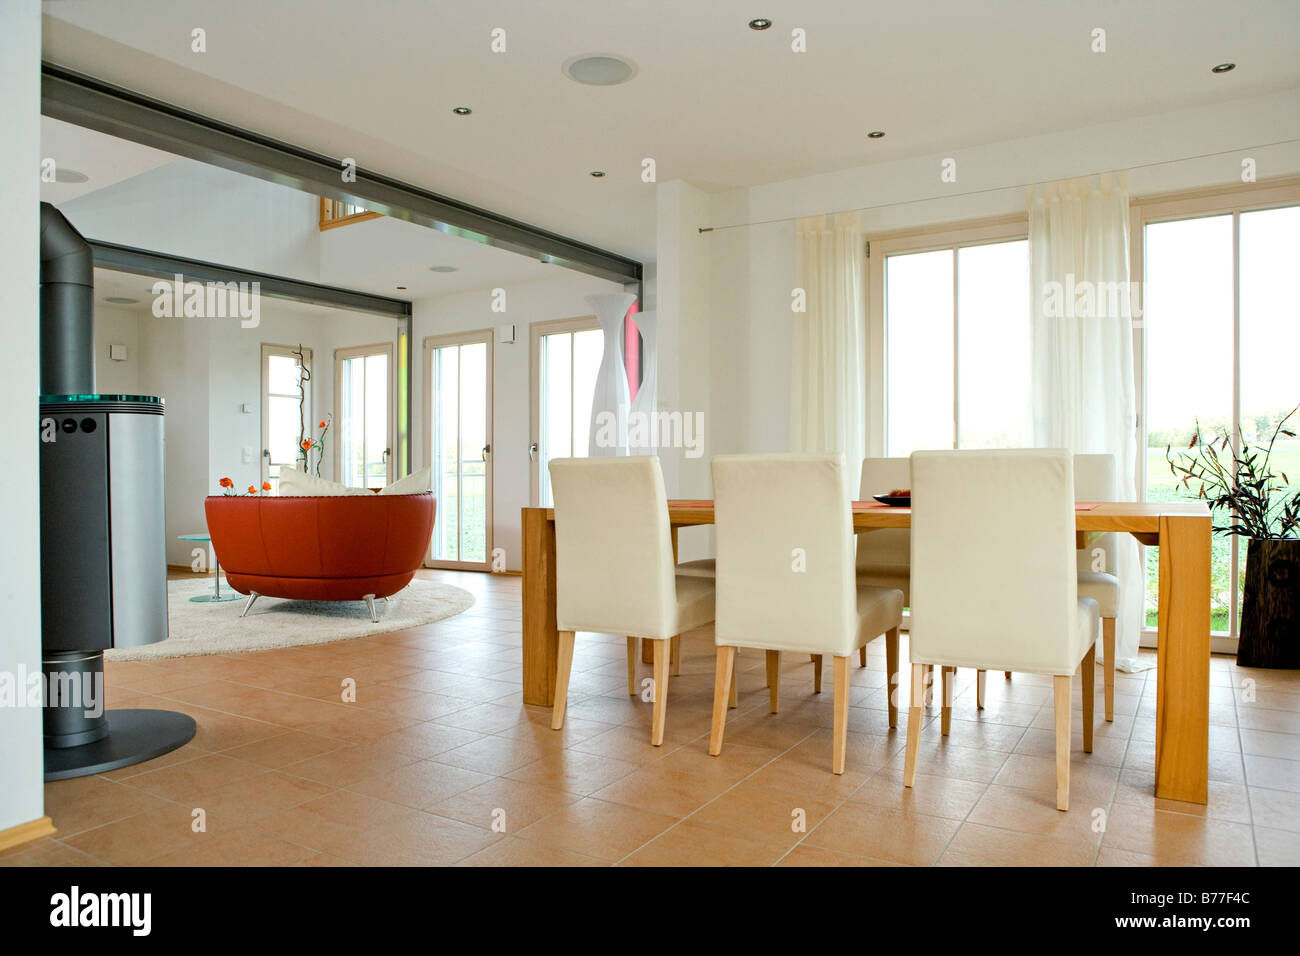 Modernes Esszimmer Modernes Esszimmer Modern Dining Room Stock Photo 21678508 Alamy